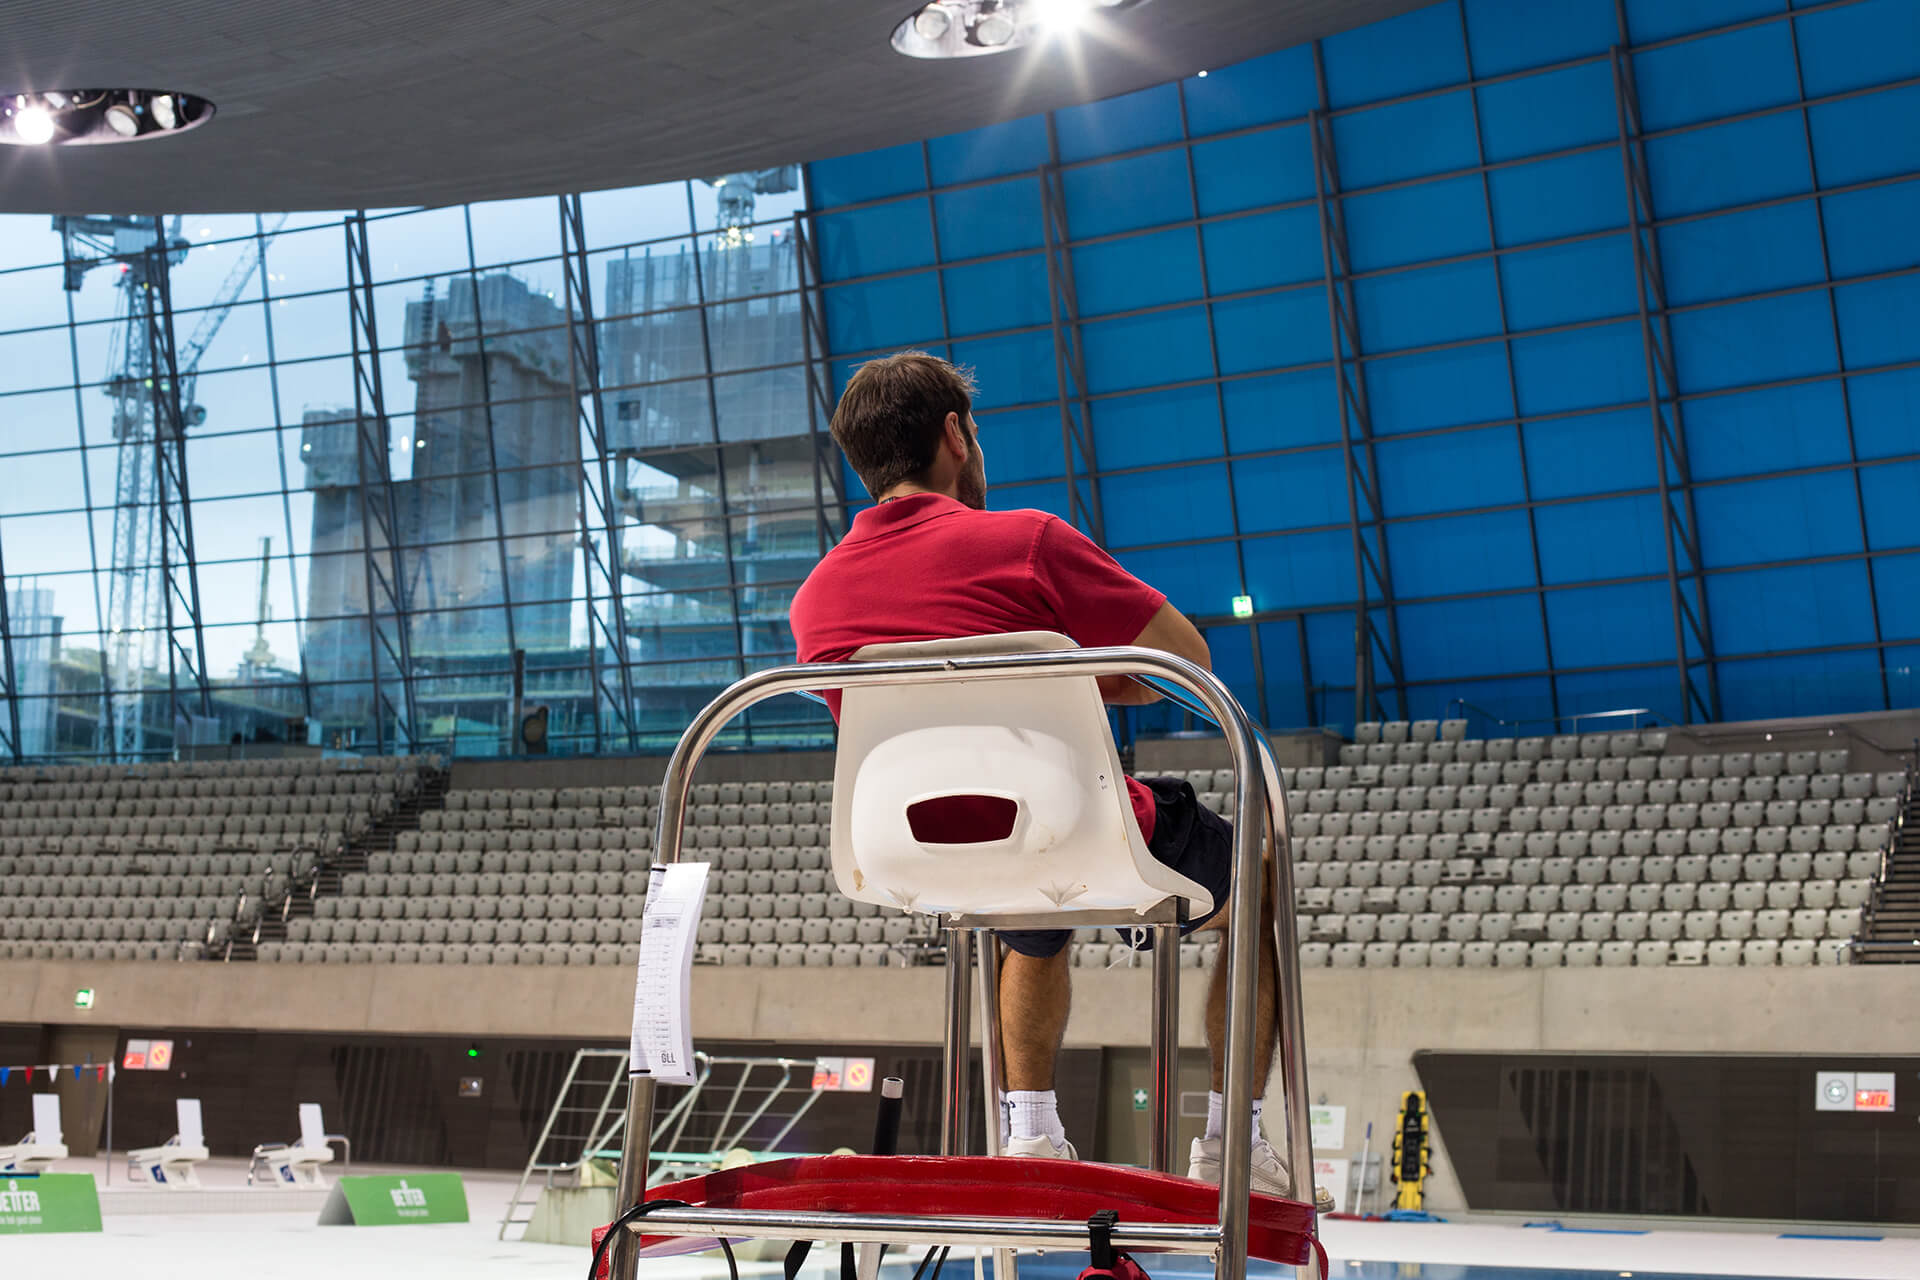 Olympic Park, Olympics, London, Landscape, Diving, Tom Oldham, Divingboard, Photography, Film, Agency, Canon, WeAreShuffle, Lifeguard, London Aquatics Centre, London Aquatics Centre, The Longest Day